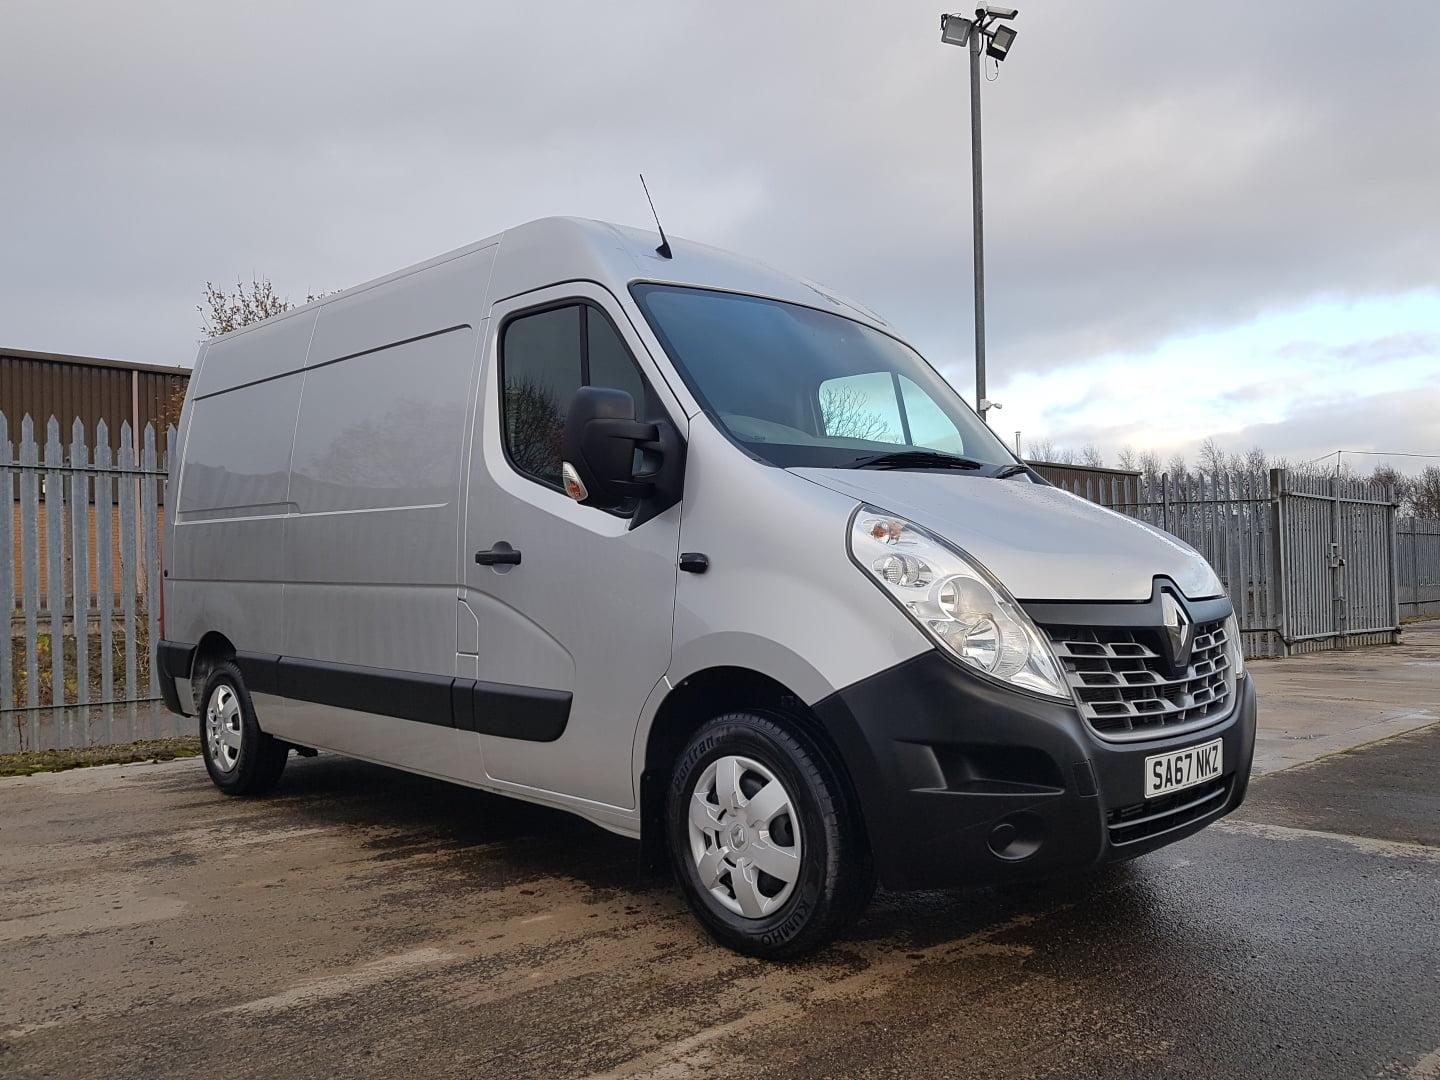 2017 (67) Renault Master Van, Manual Gearbox, Low Mileage, Towbar Fitted, Camera System Fitted, Steering Wheel Controls, 09/21 MOT.